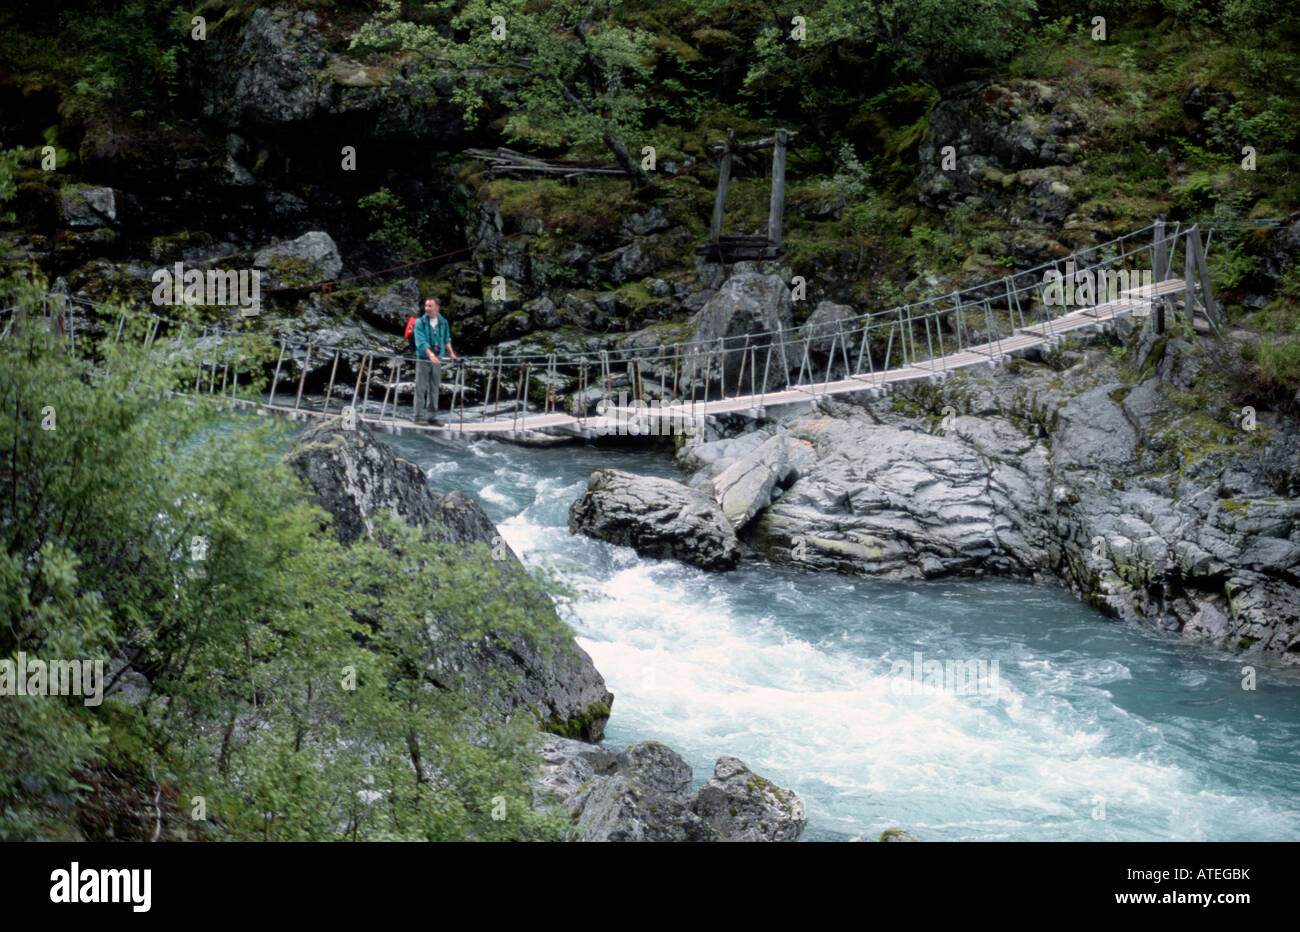 Suspension Bridge - Stock Image